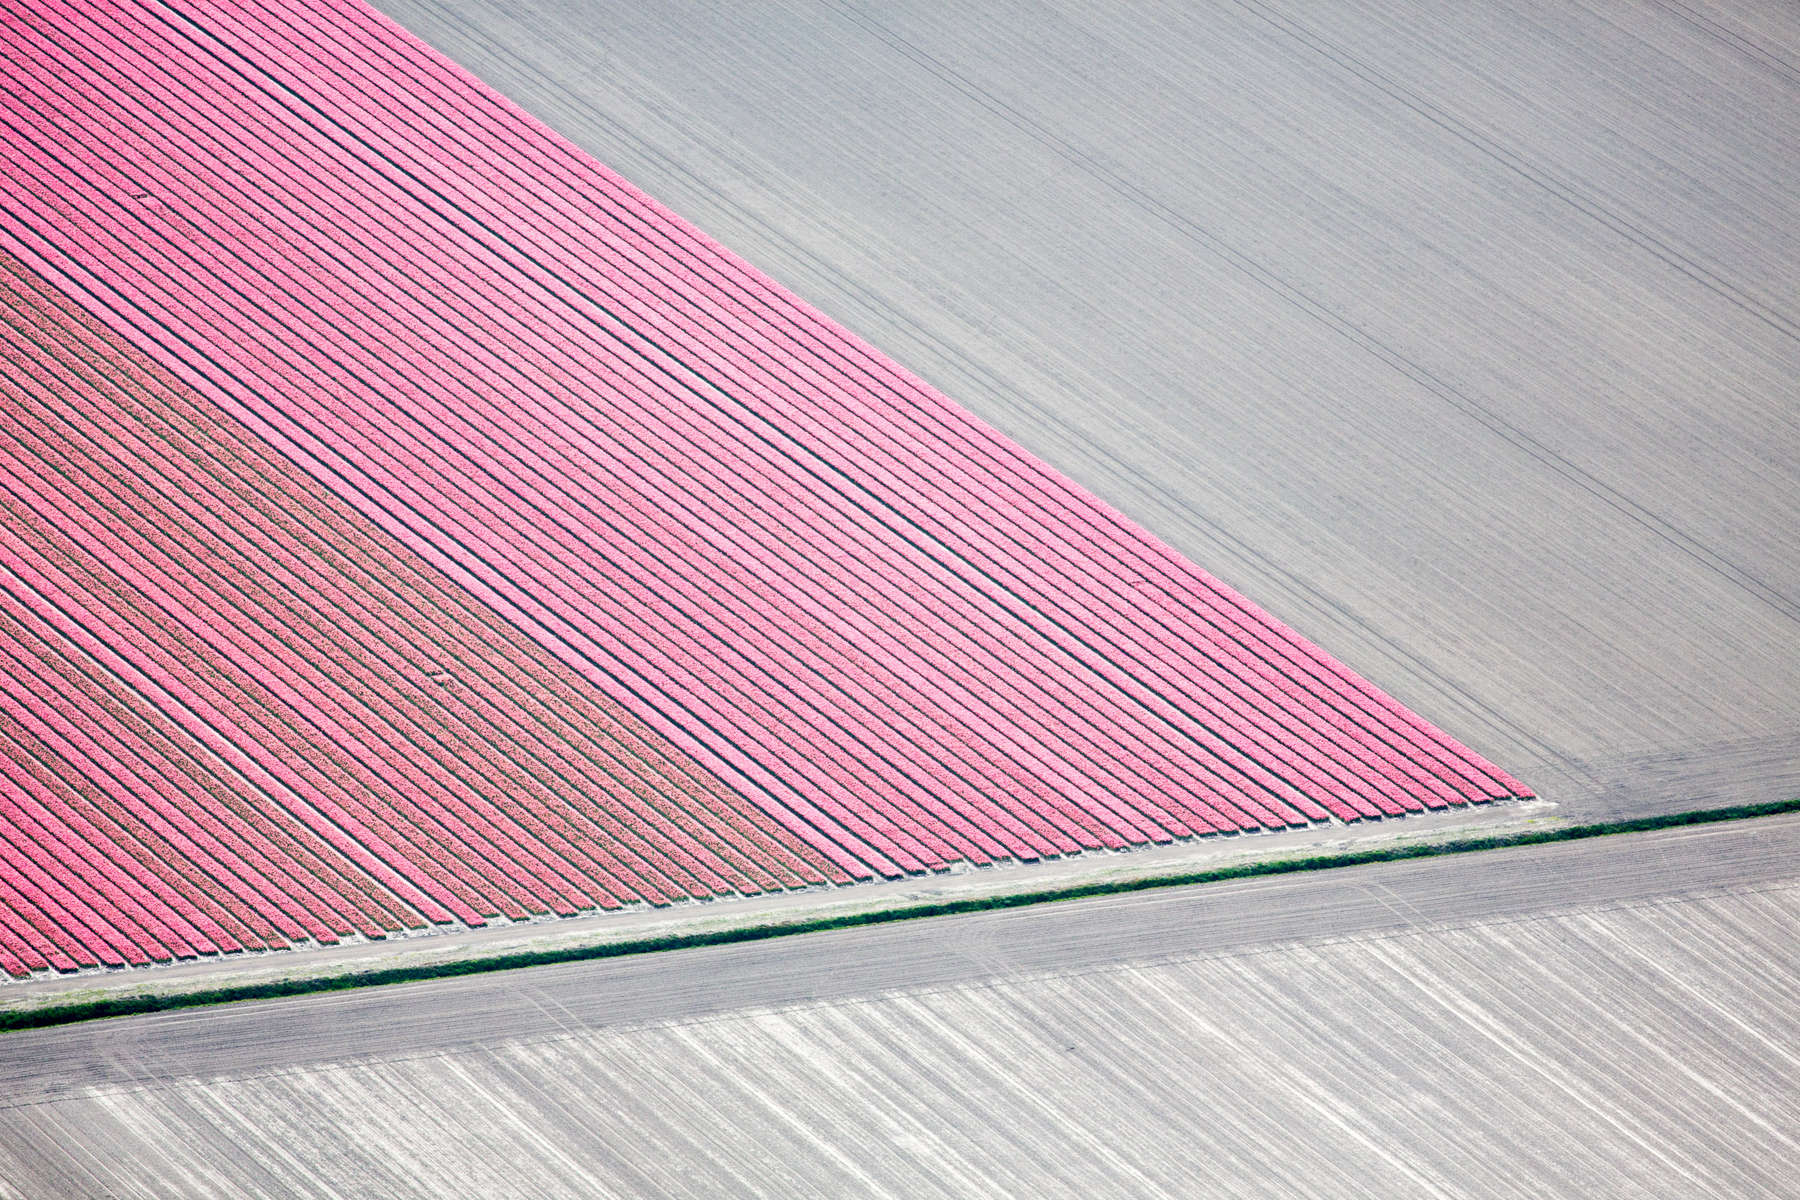 Pink Tulip Strips, Netherlands 2015 (150510-0094)Prices and availability are subject to change without notice.